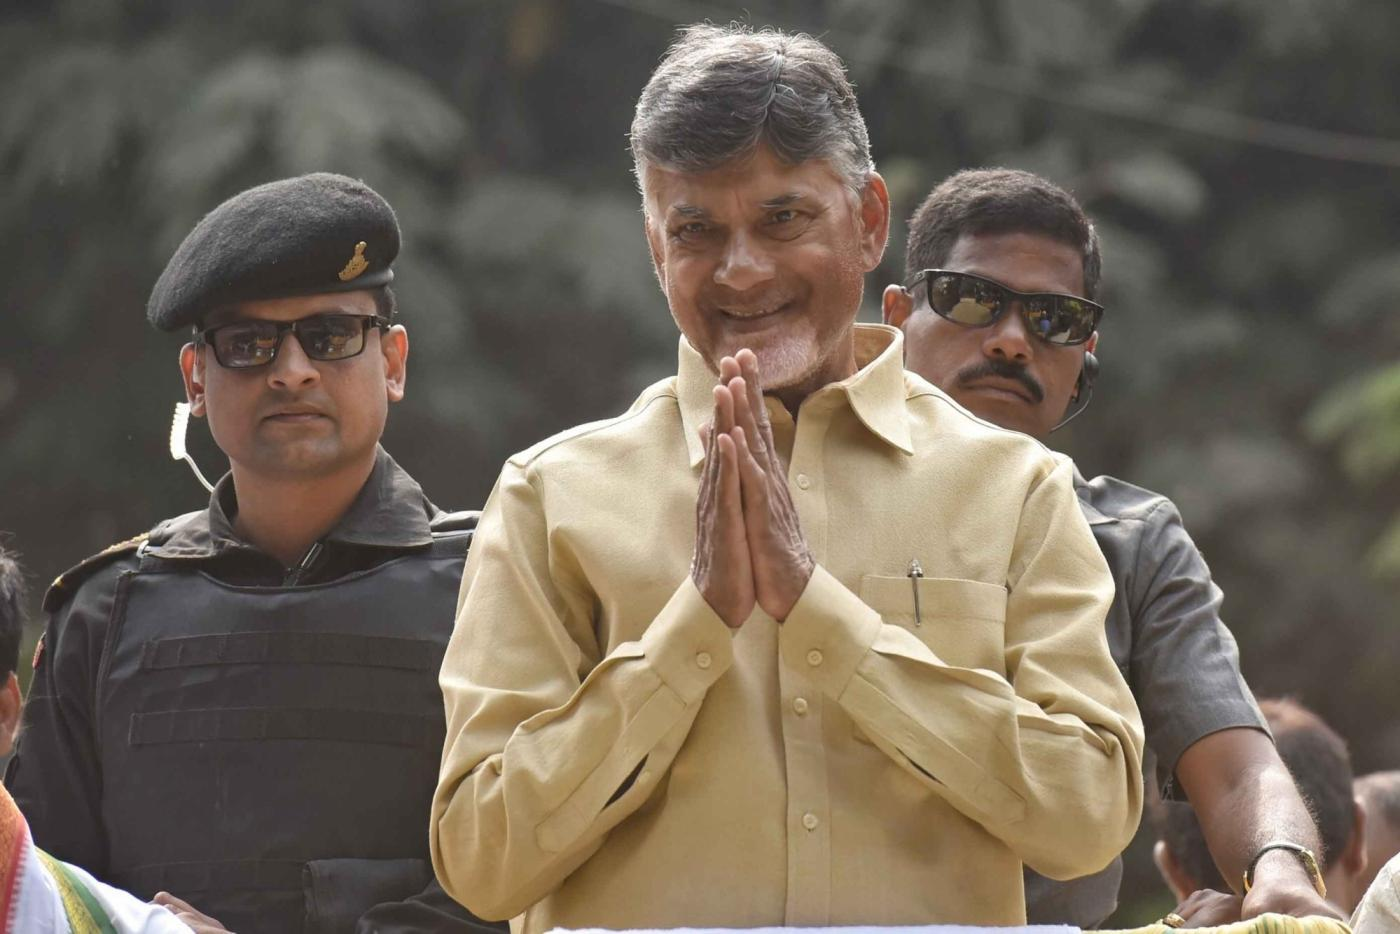 Hyderabad: Andhra Pradesh Chief Minister and TDP supremo N. Chandrababu Naidu during a roadshow in Hyderabad on Dec 3, 2018. (Photo: IANS) by .